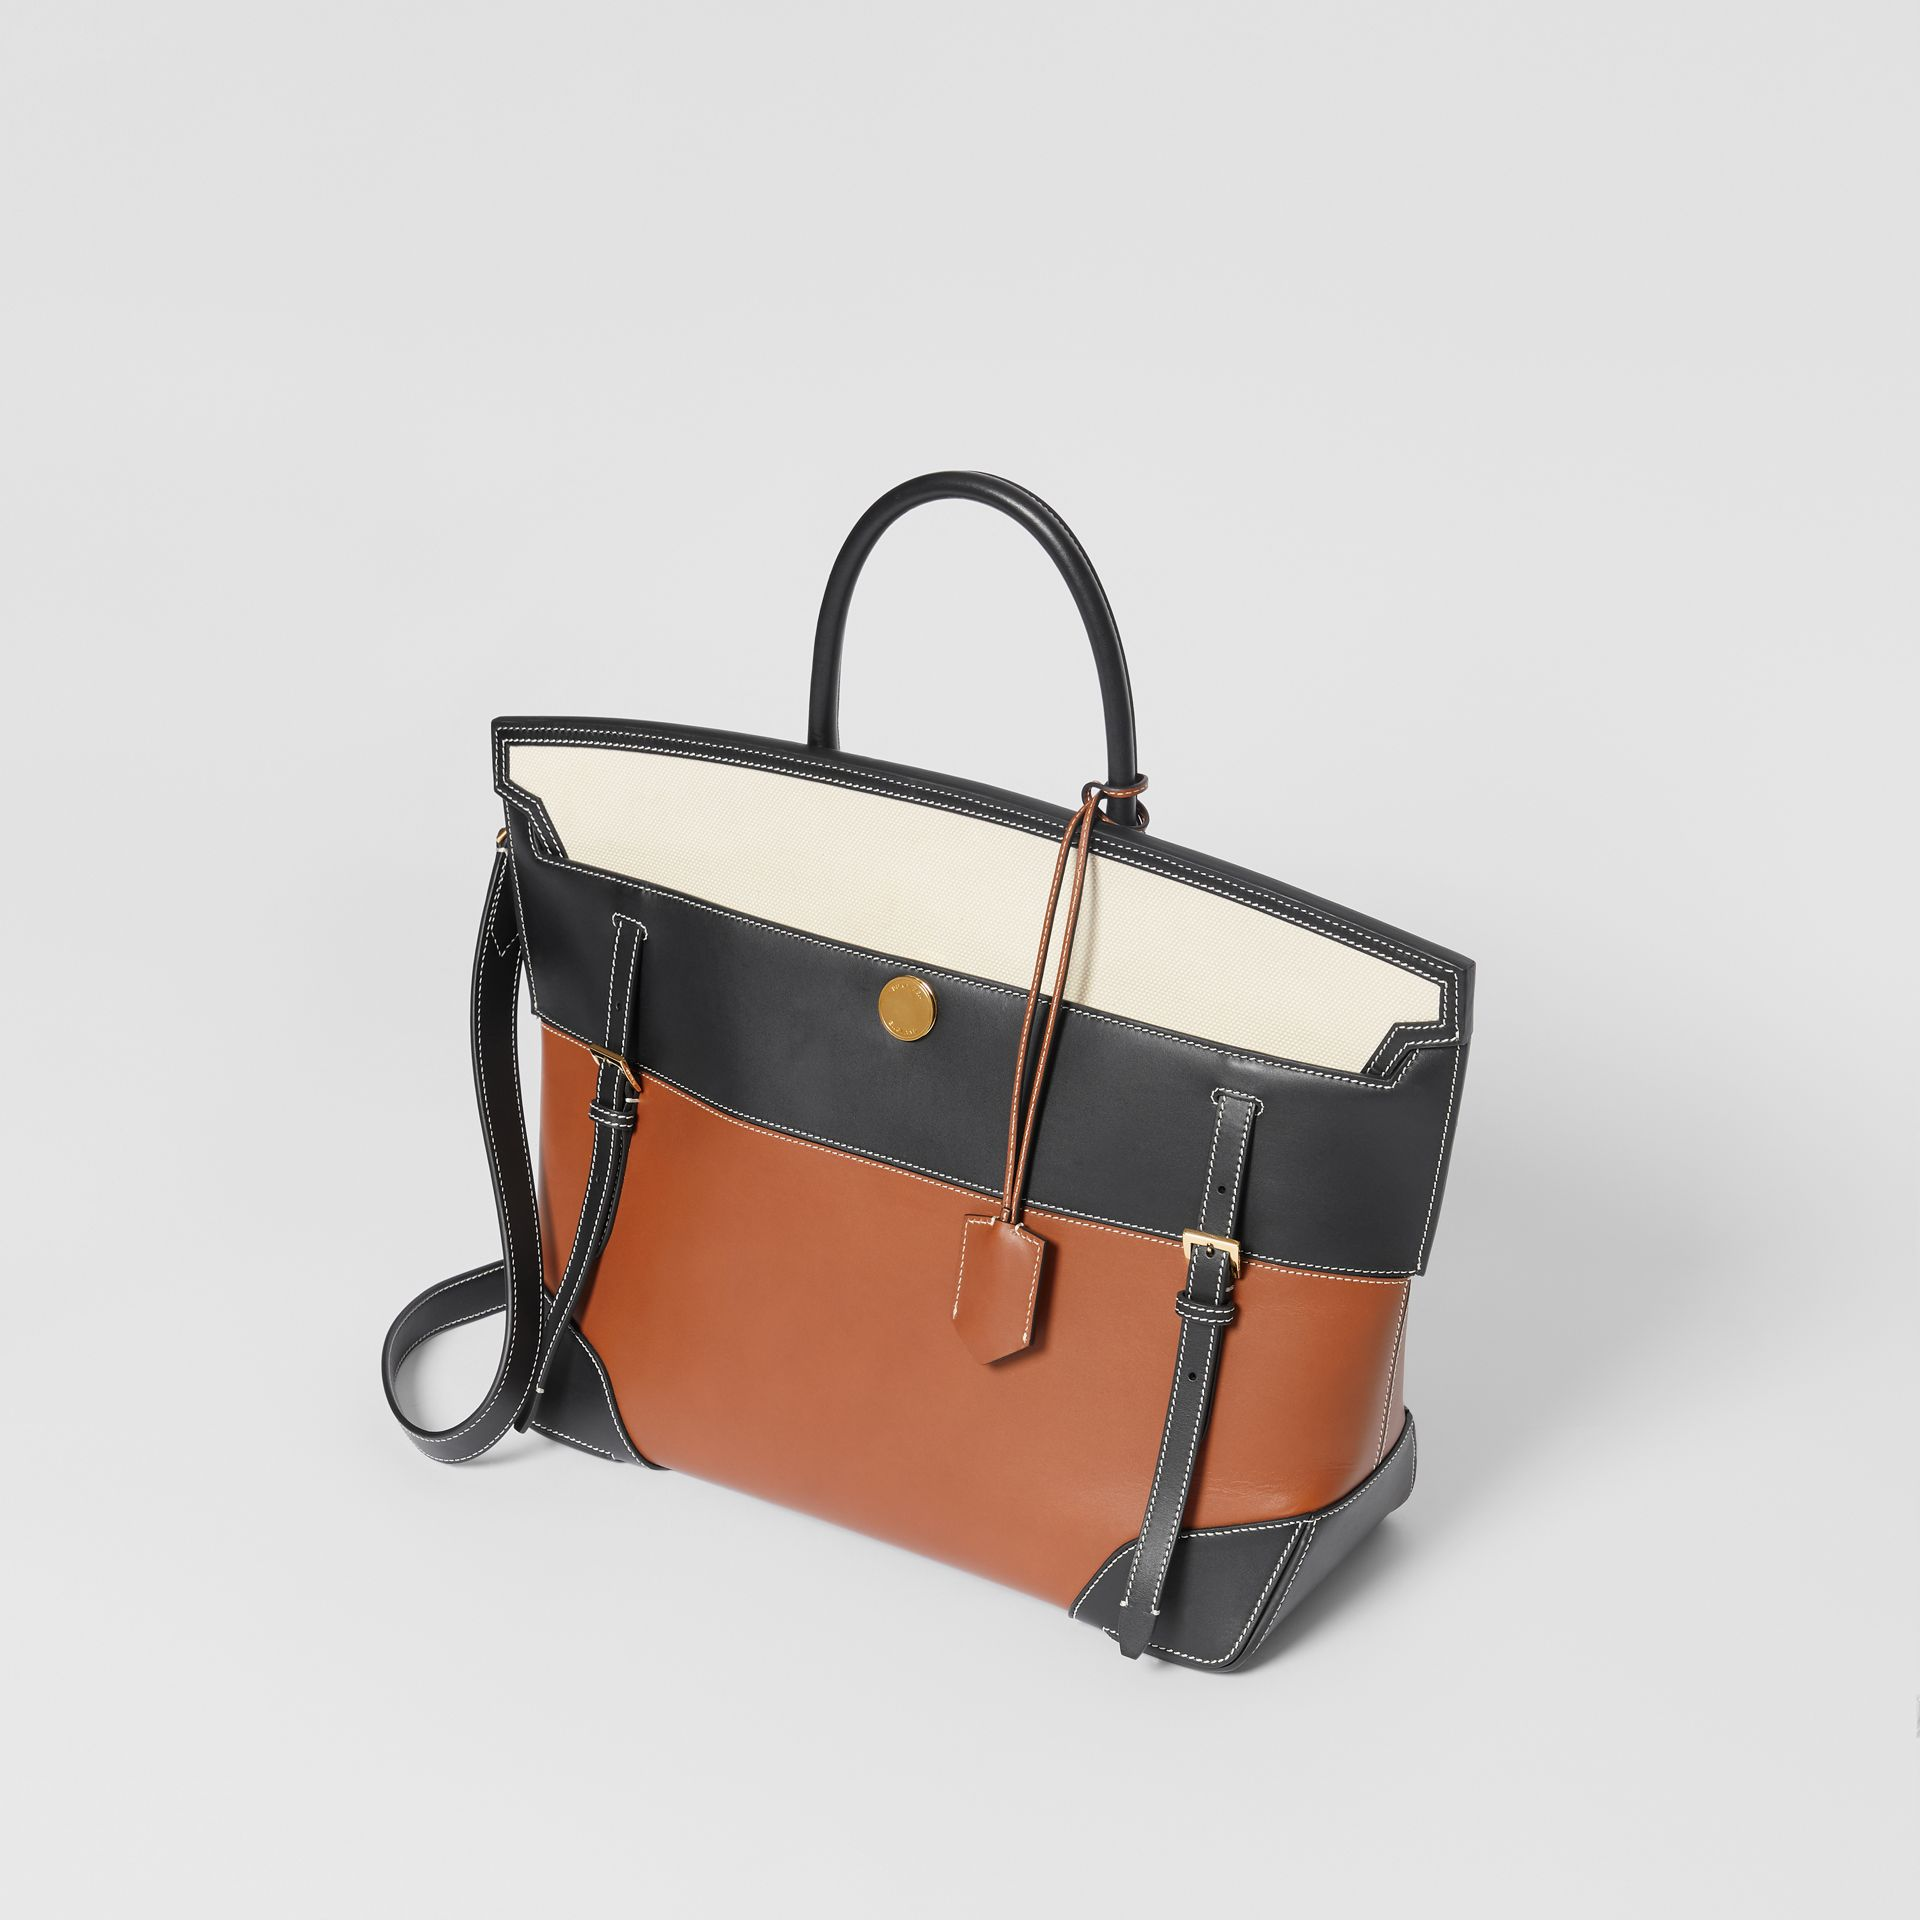 Tri-tone Leather and Canvas Society Top Handle Bag in Tan/black - Women | Burberry - gallery image 2